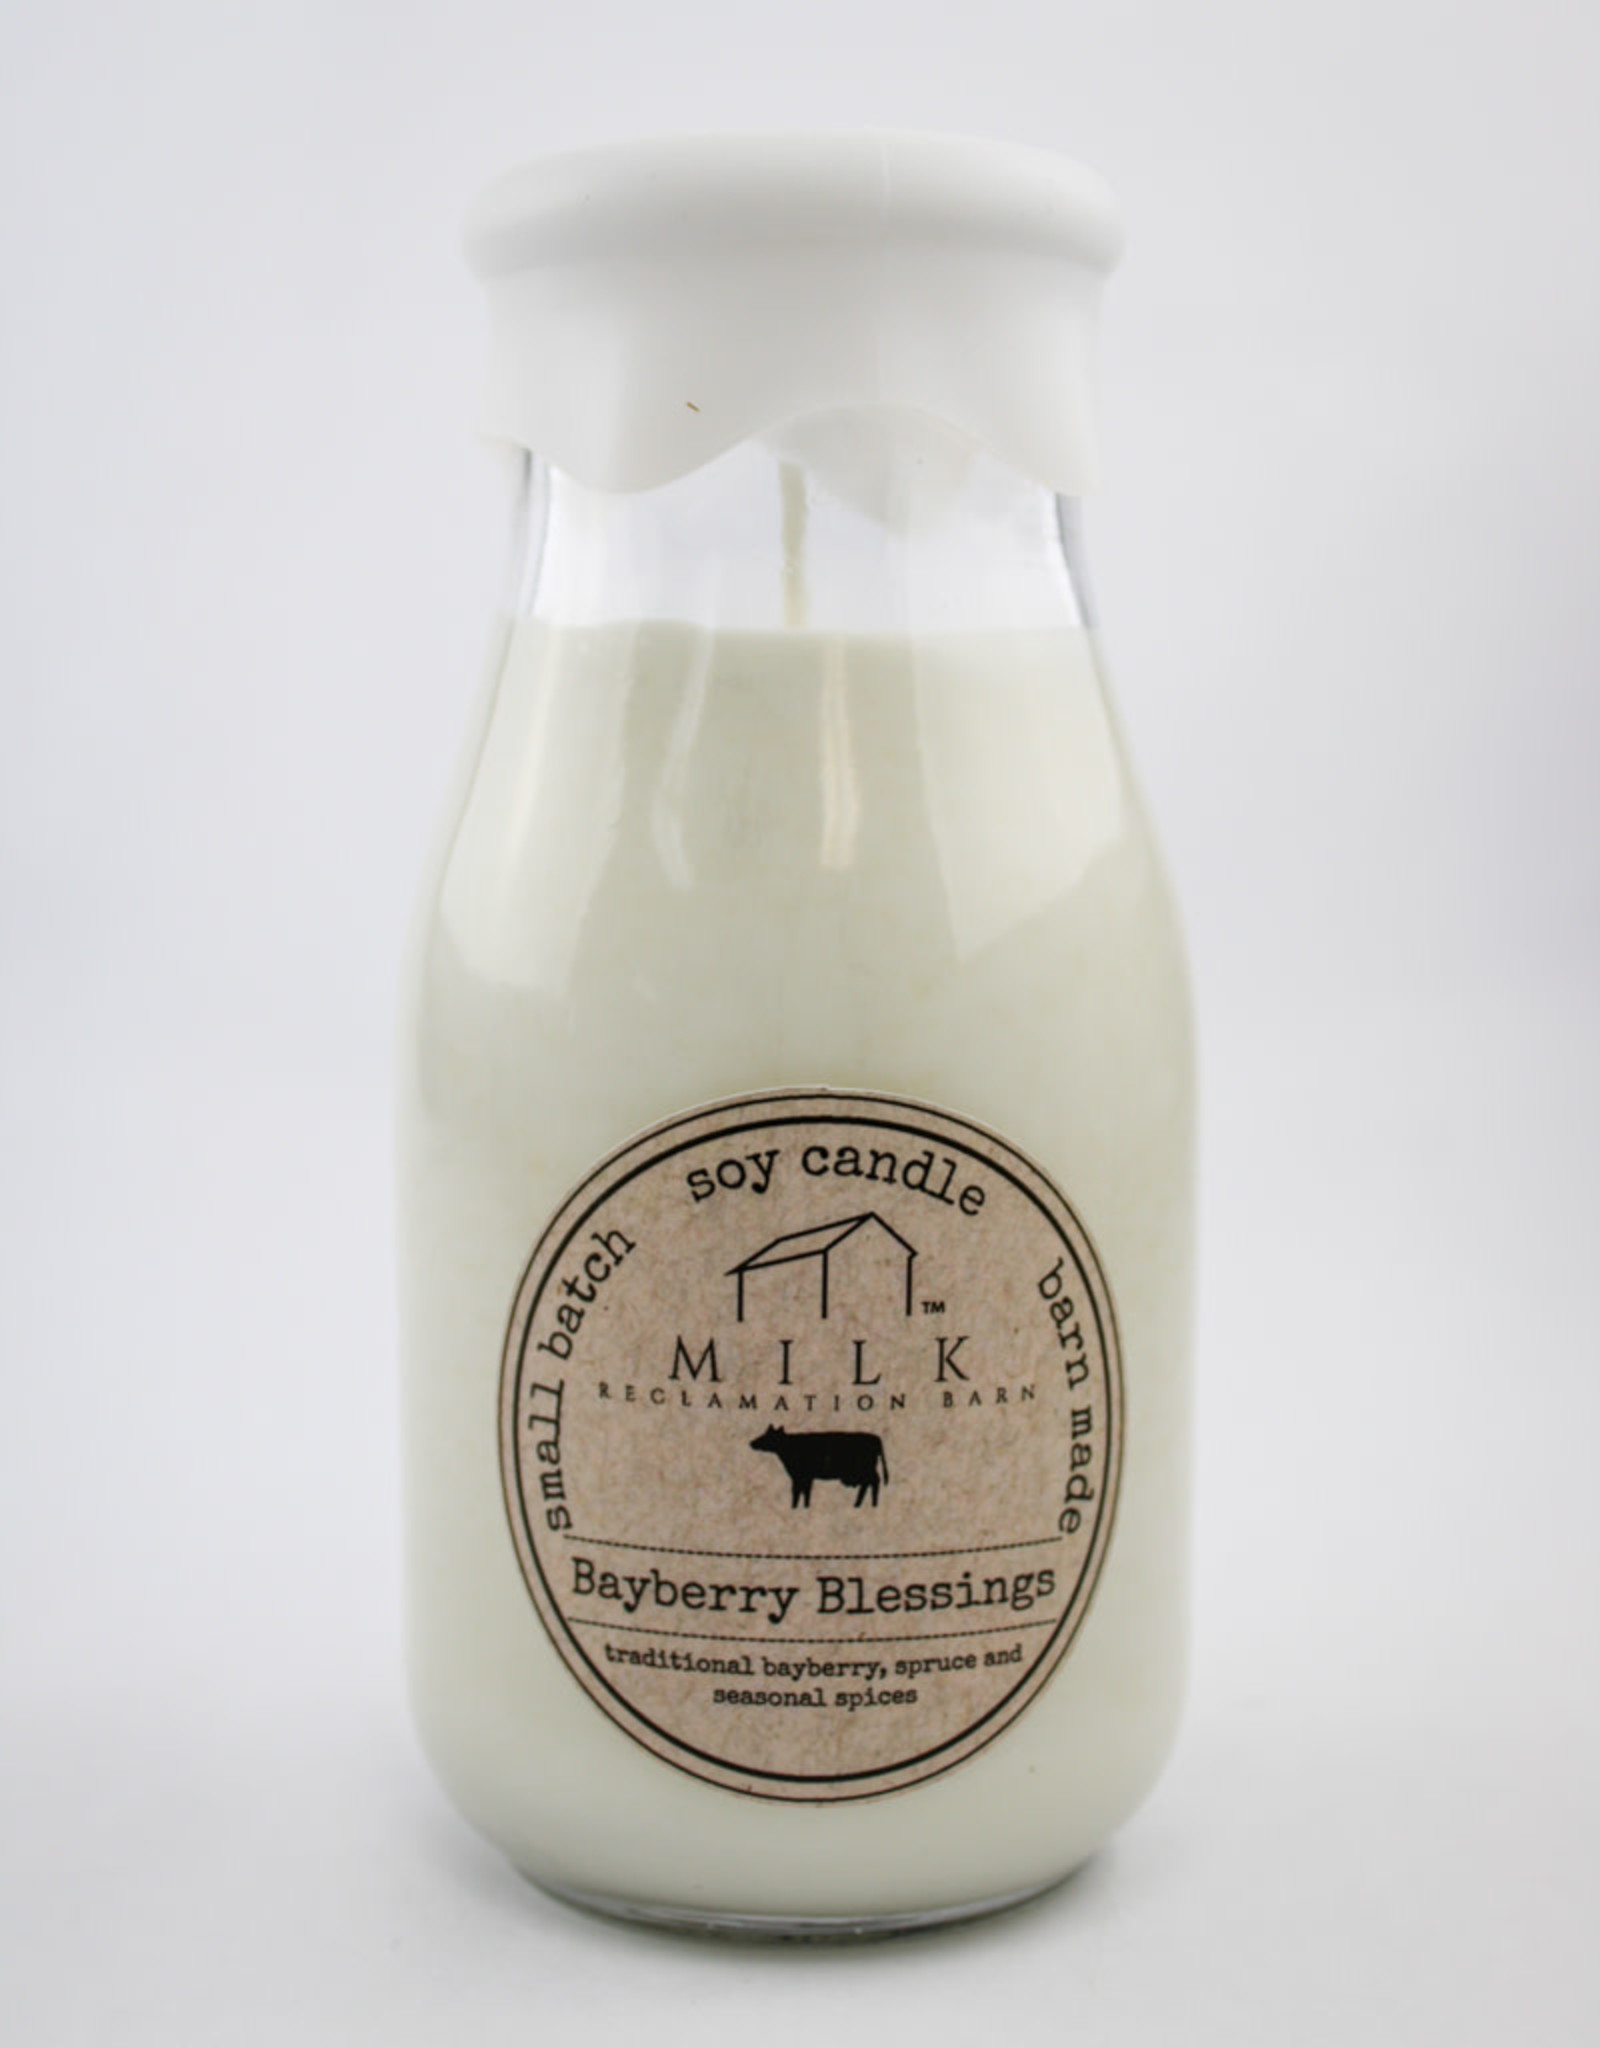 Milk Reclamation Barn Milk Bottle Holiday Collection Once Upon A Time Gingerbread Candle